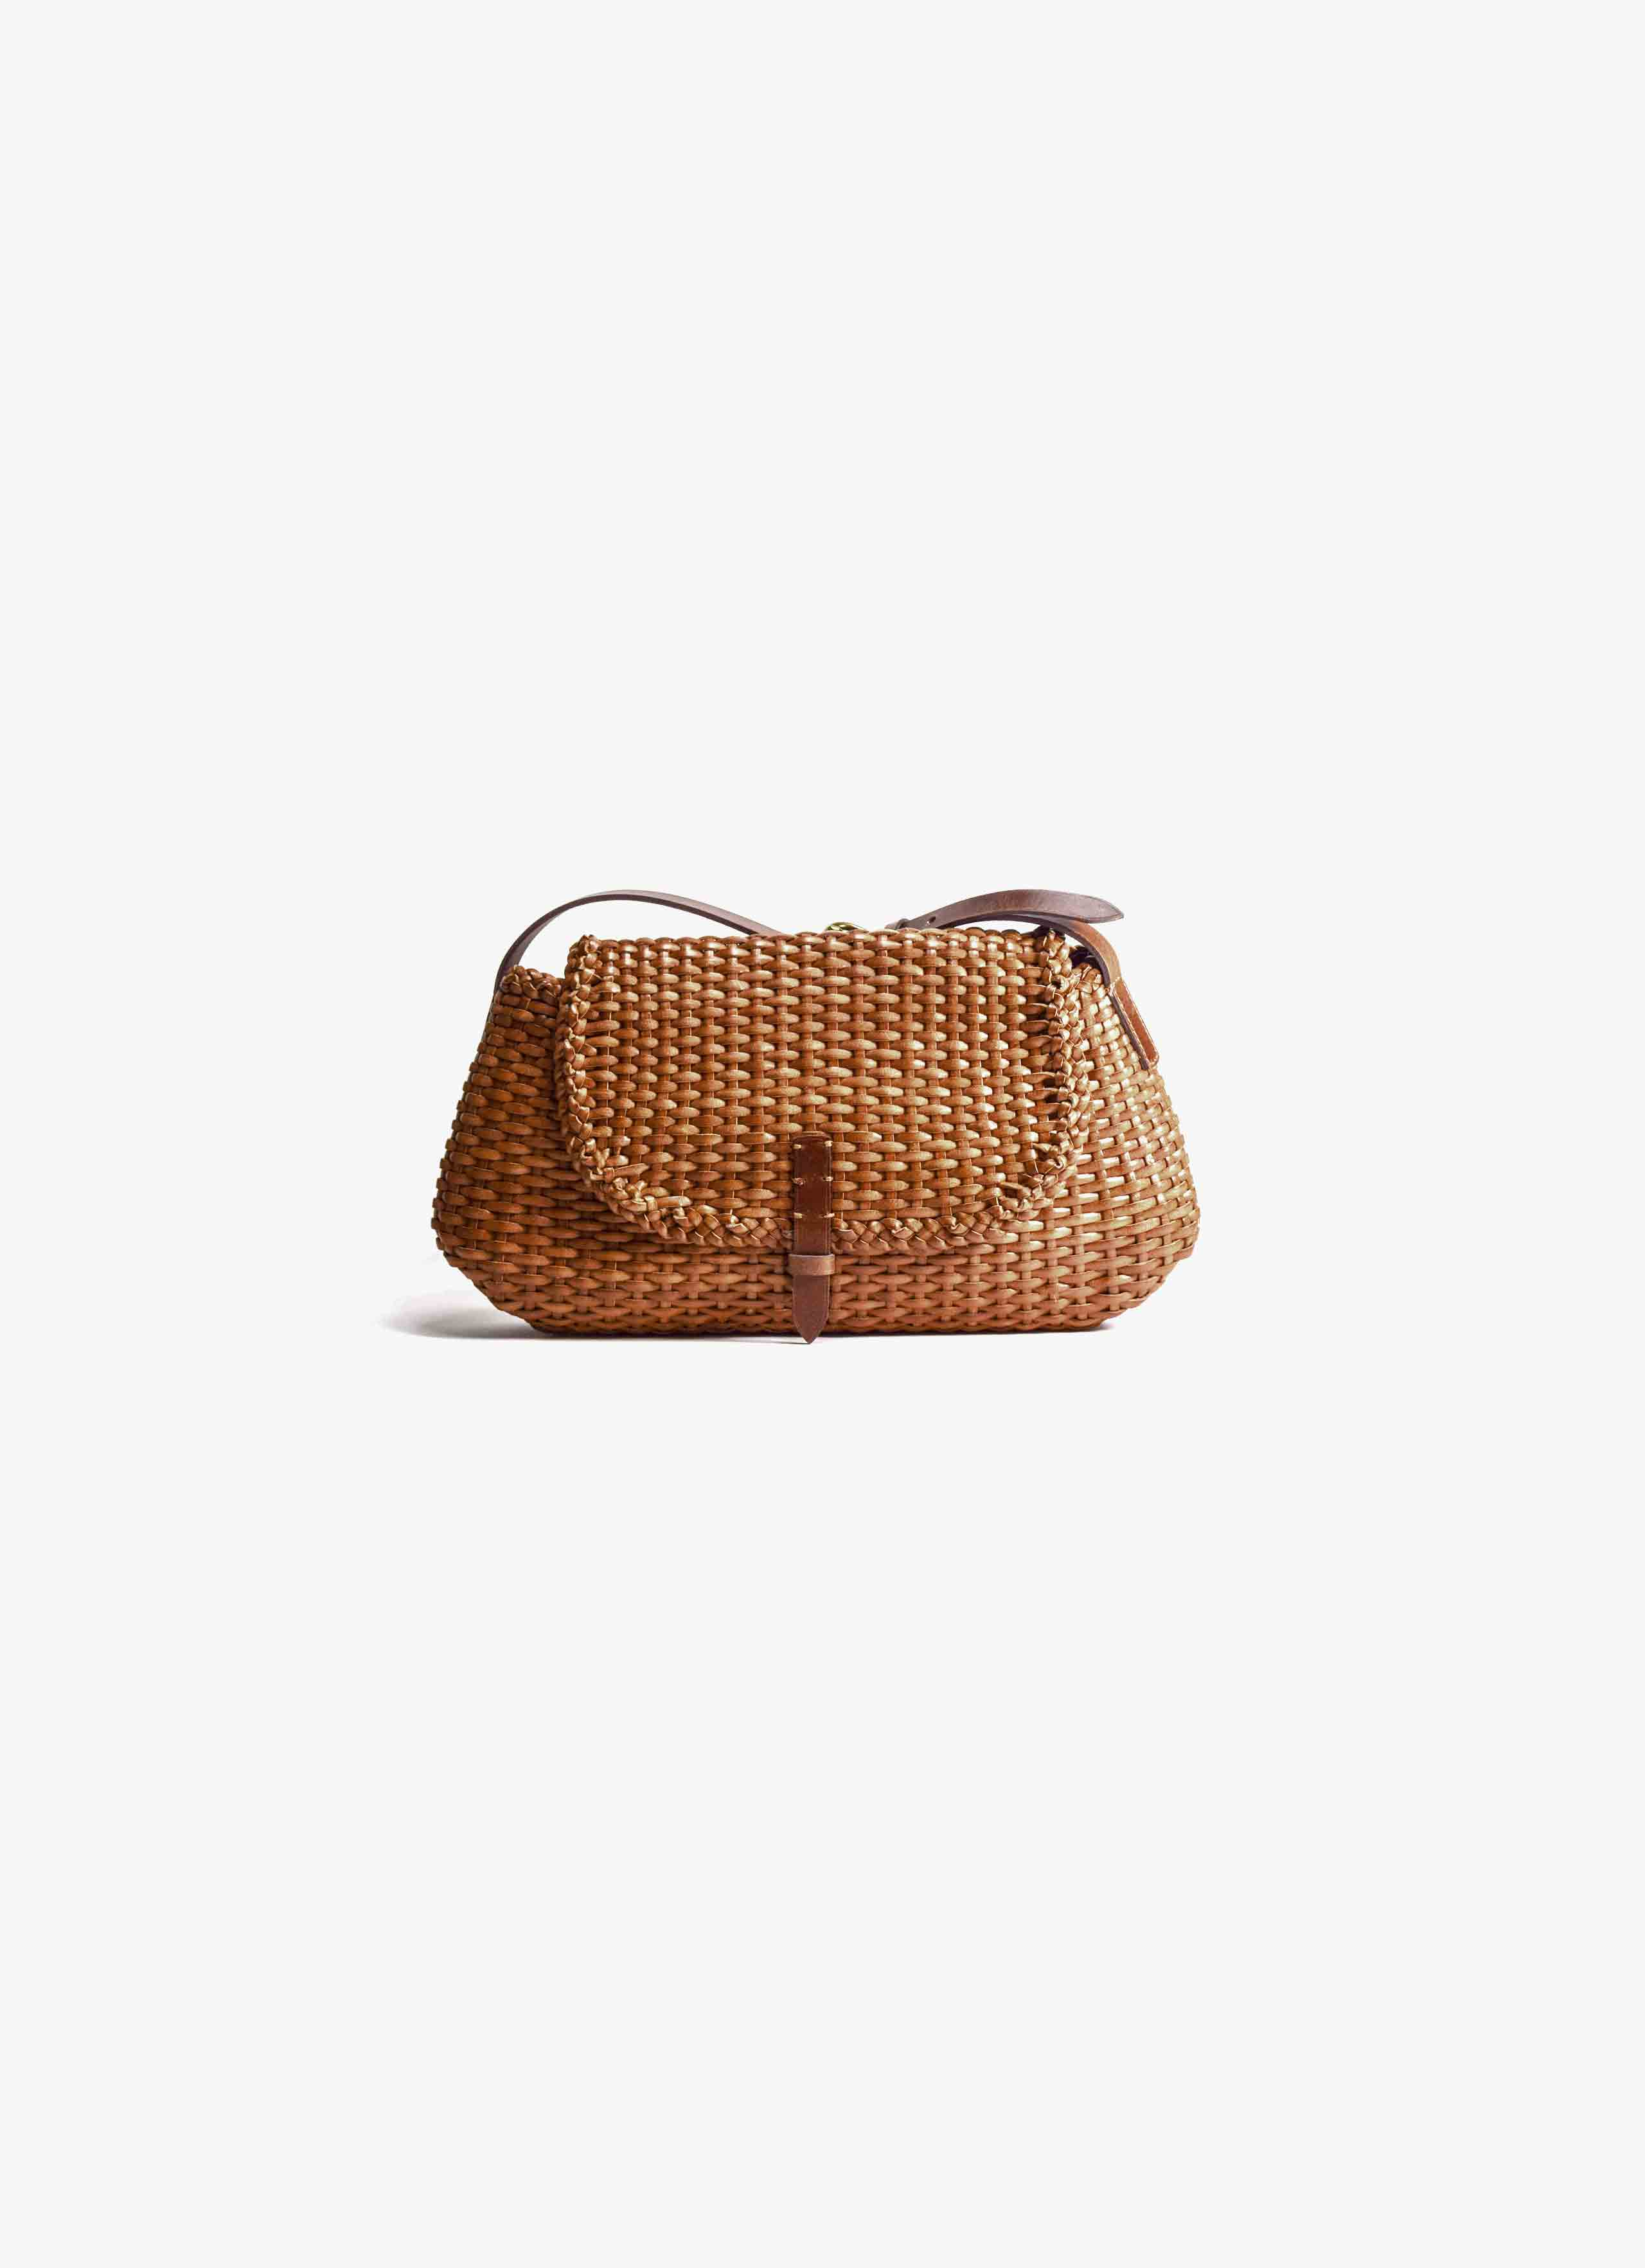 Dragon Diffusion - Weave City Strap - Leather Bag with Flap